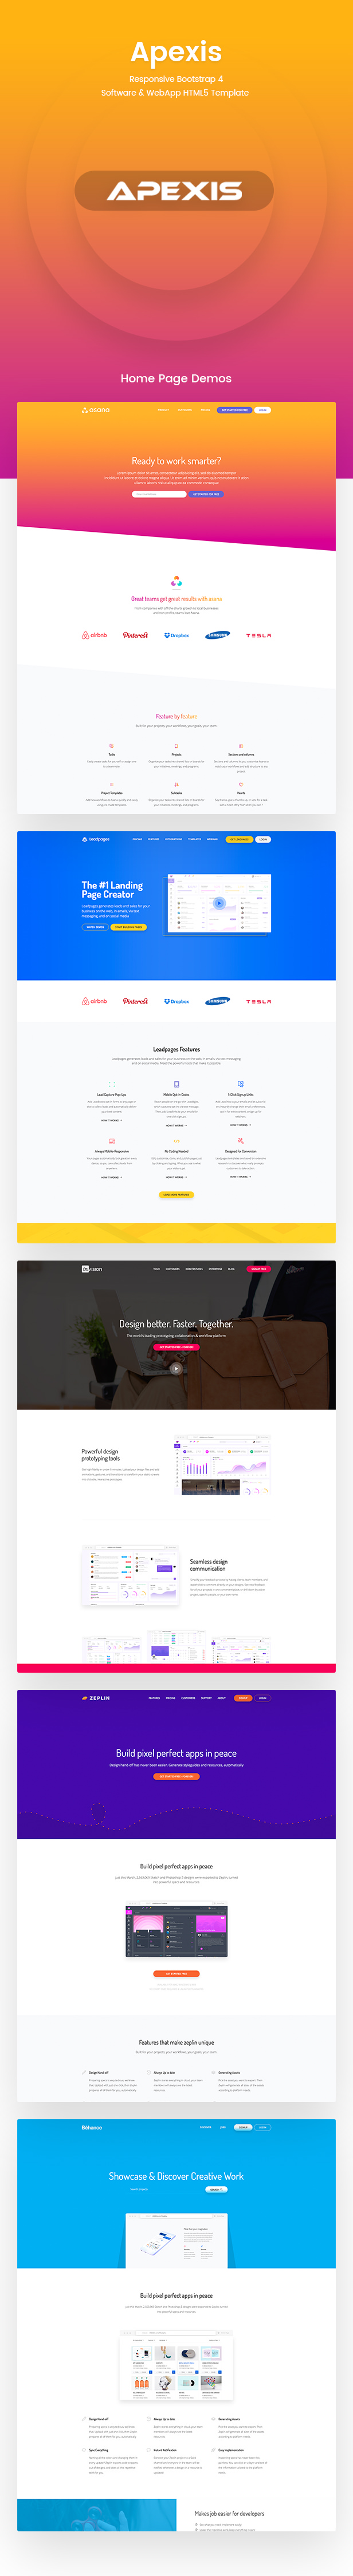 Apexis - Responsive Bootstrap 4 Software & WebApp HTML5 Template - 2